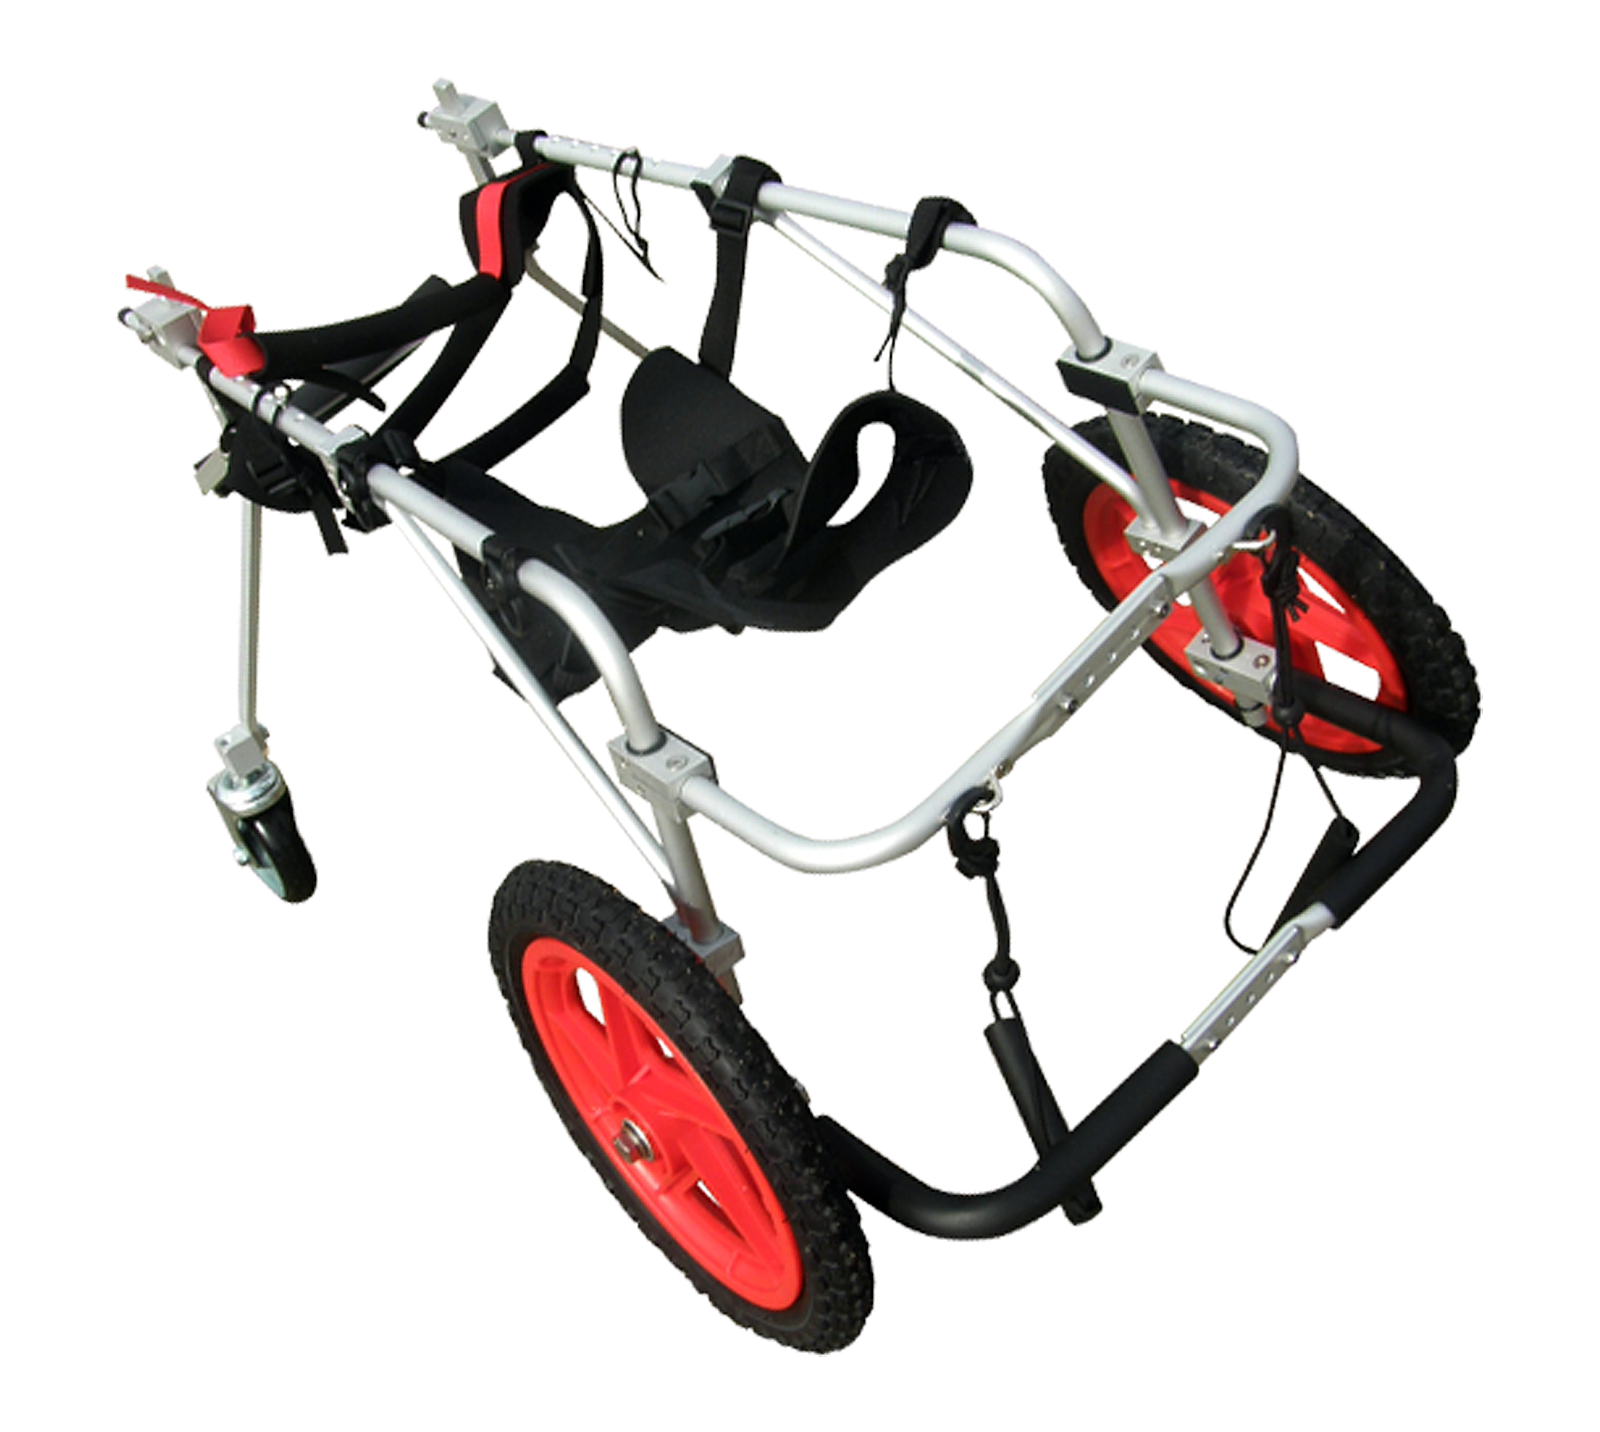 Full / Quad Support Dog Wheelchair - LARGE - (20-27